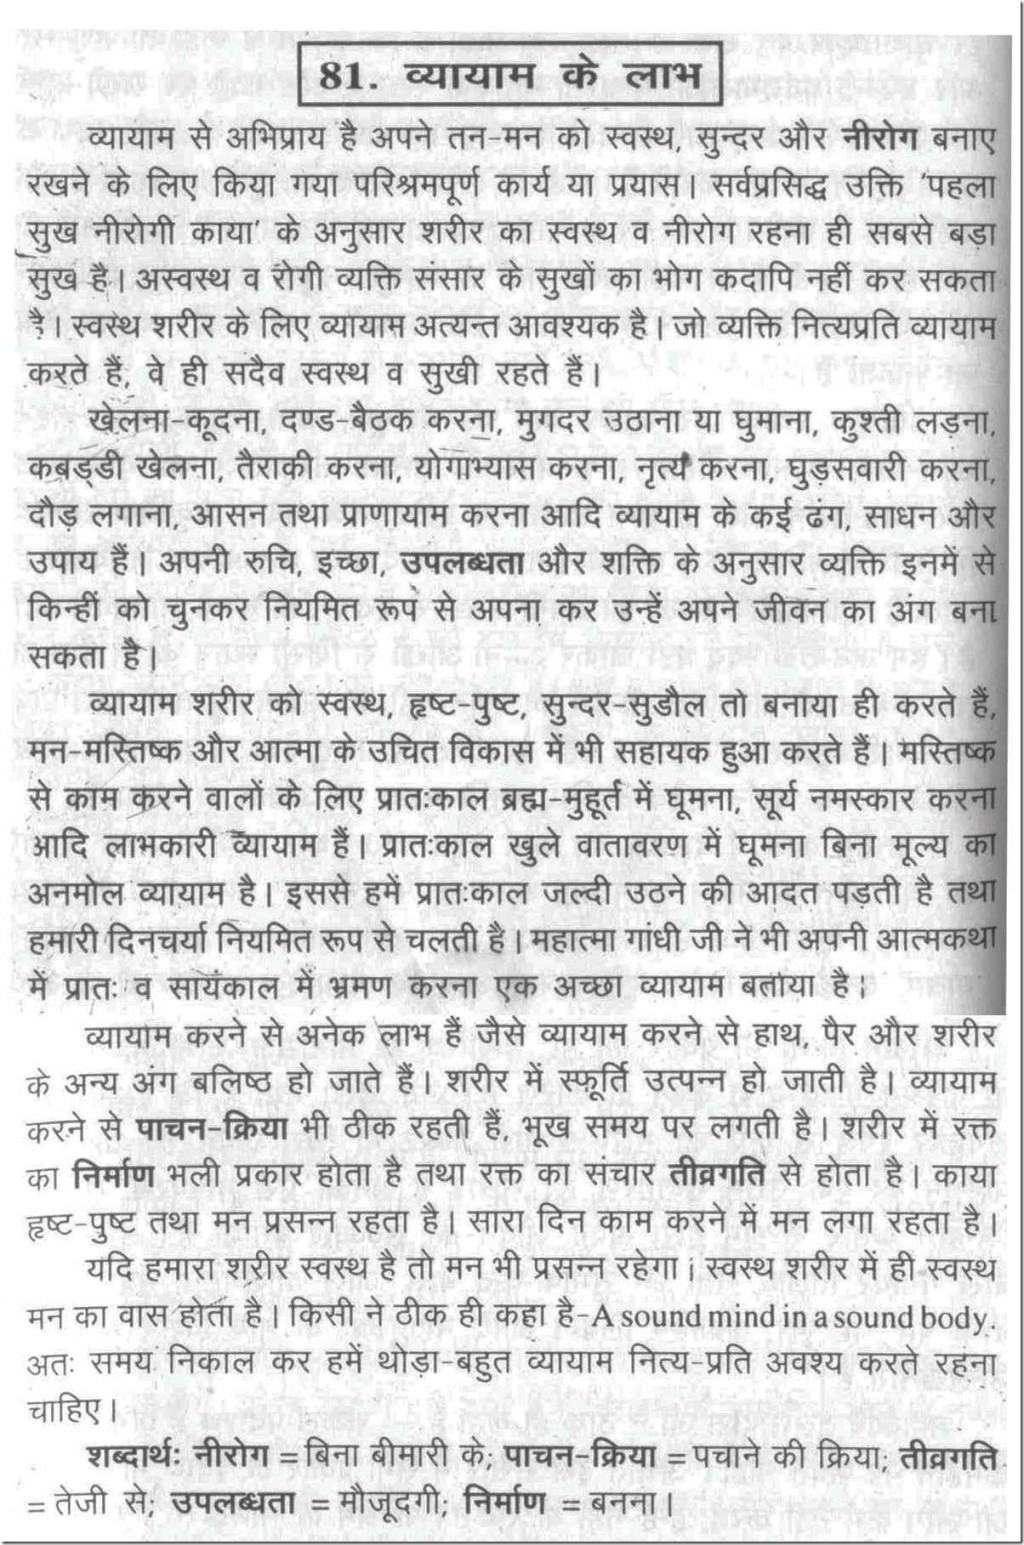 011 2563478896 Essay On Health And Fitness Through Food Good Habits In Hindi Exceptional Healthy Eating Reading Is A Habit Large